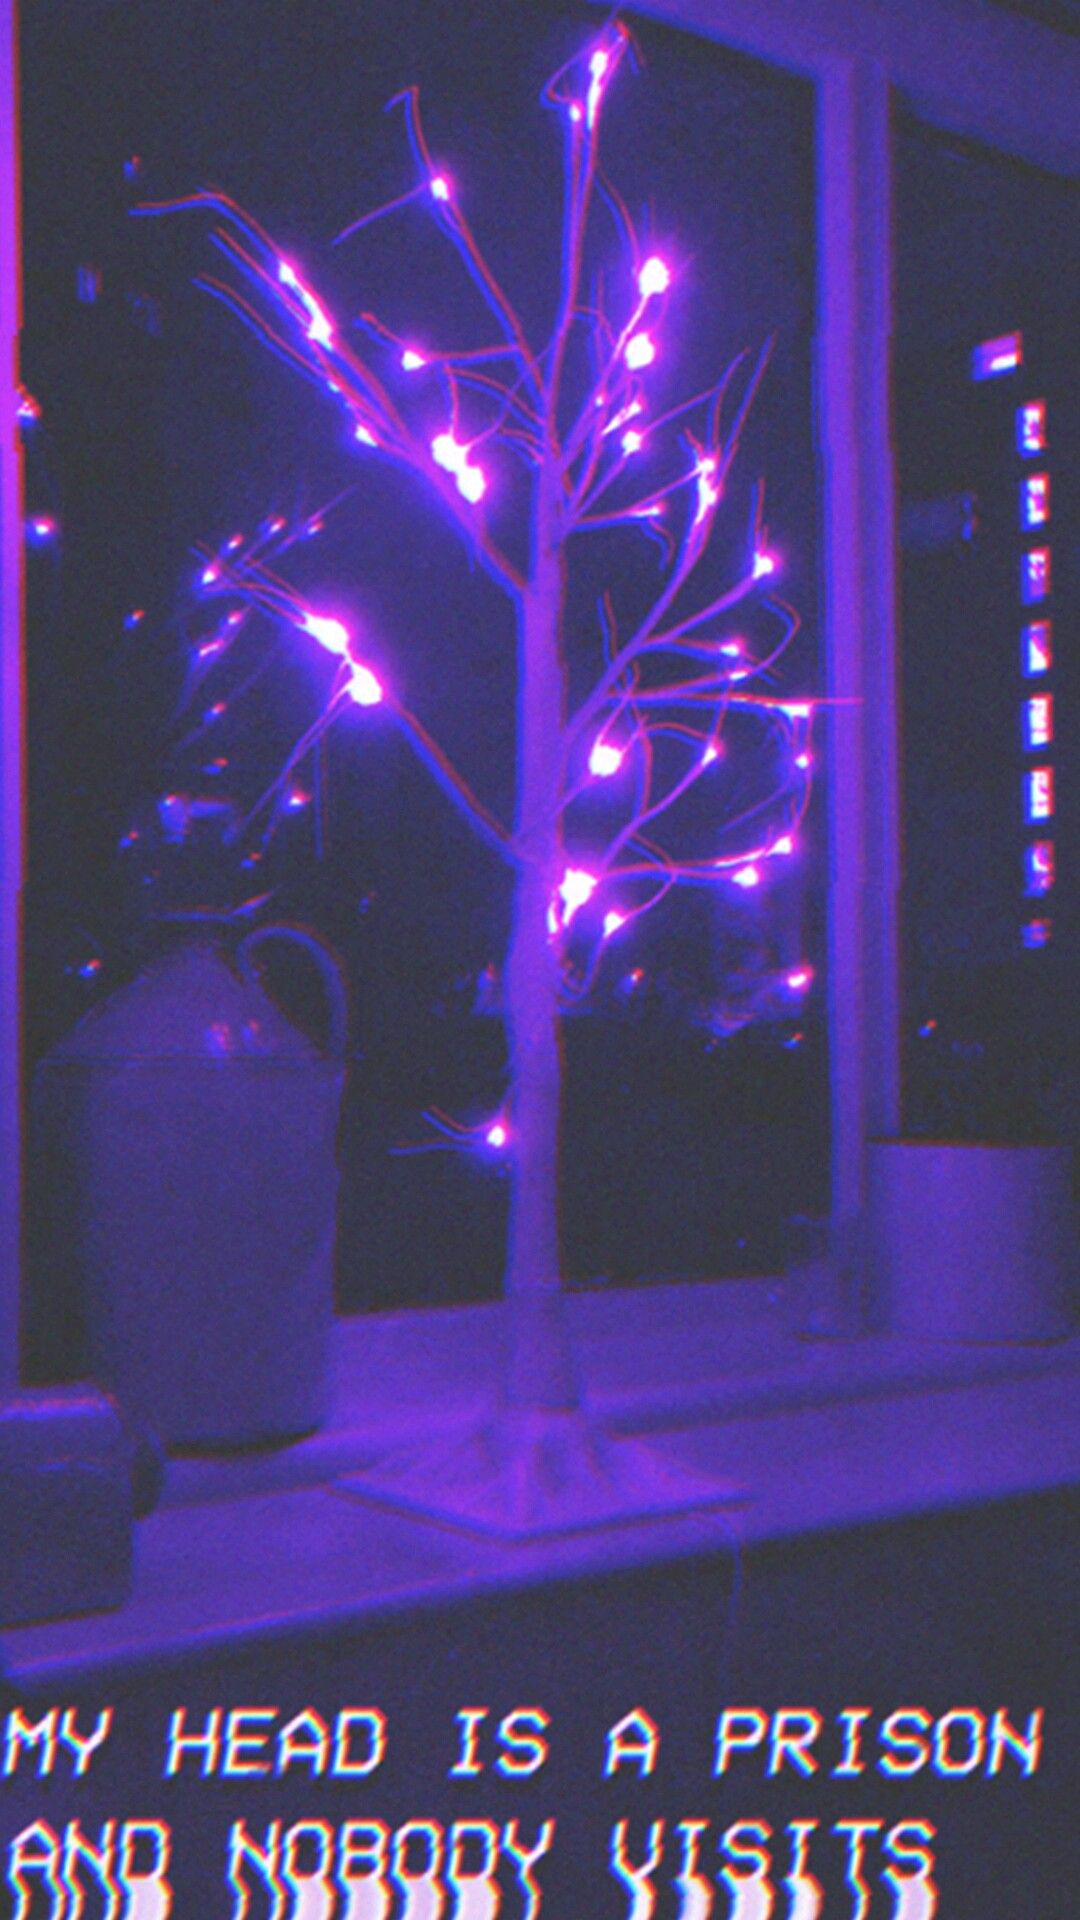 Aesthetic Purple Wallpaper Posted By Ethan Thompson Customize your desktop, mobile phone and tablet with our wide variety of cool and interesting purple aesthetic wallpapers in just a few clicks! aesthetic purple wallpaper posted by